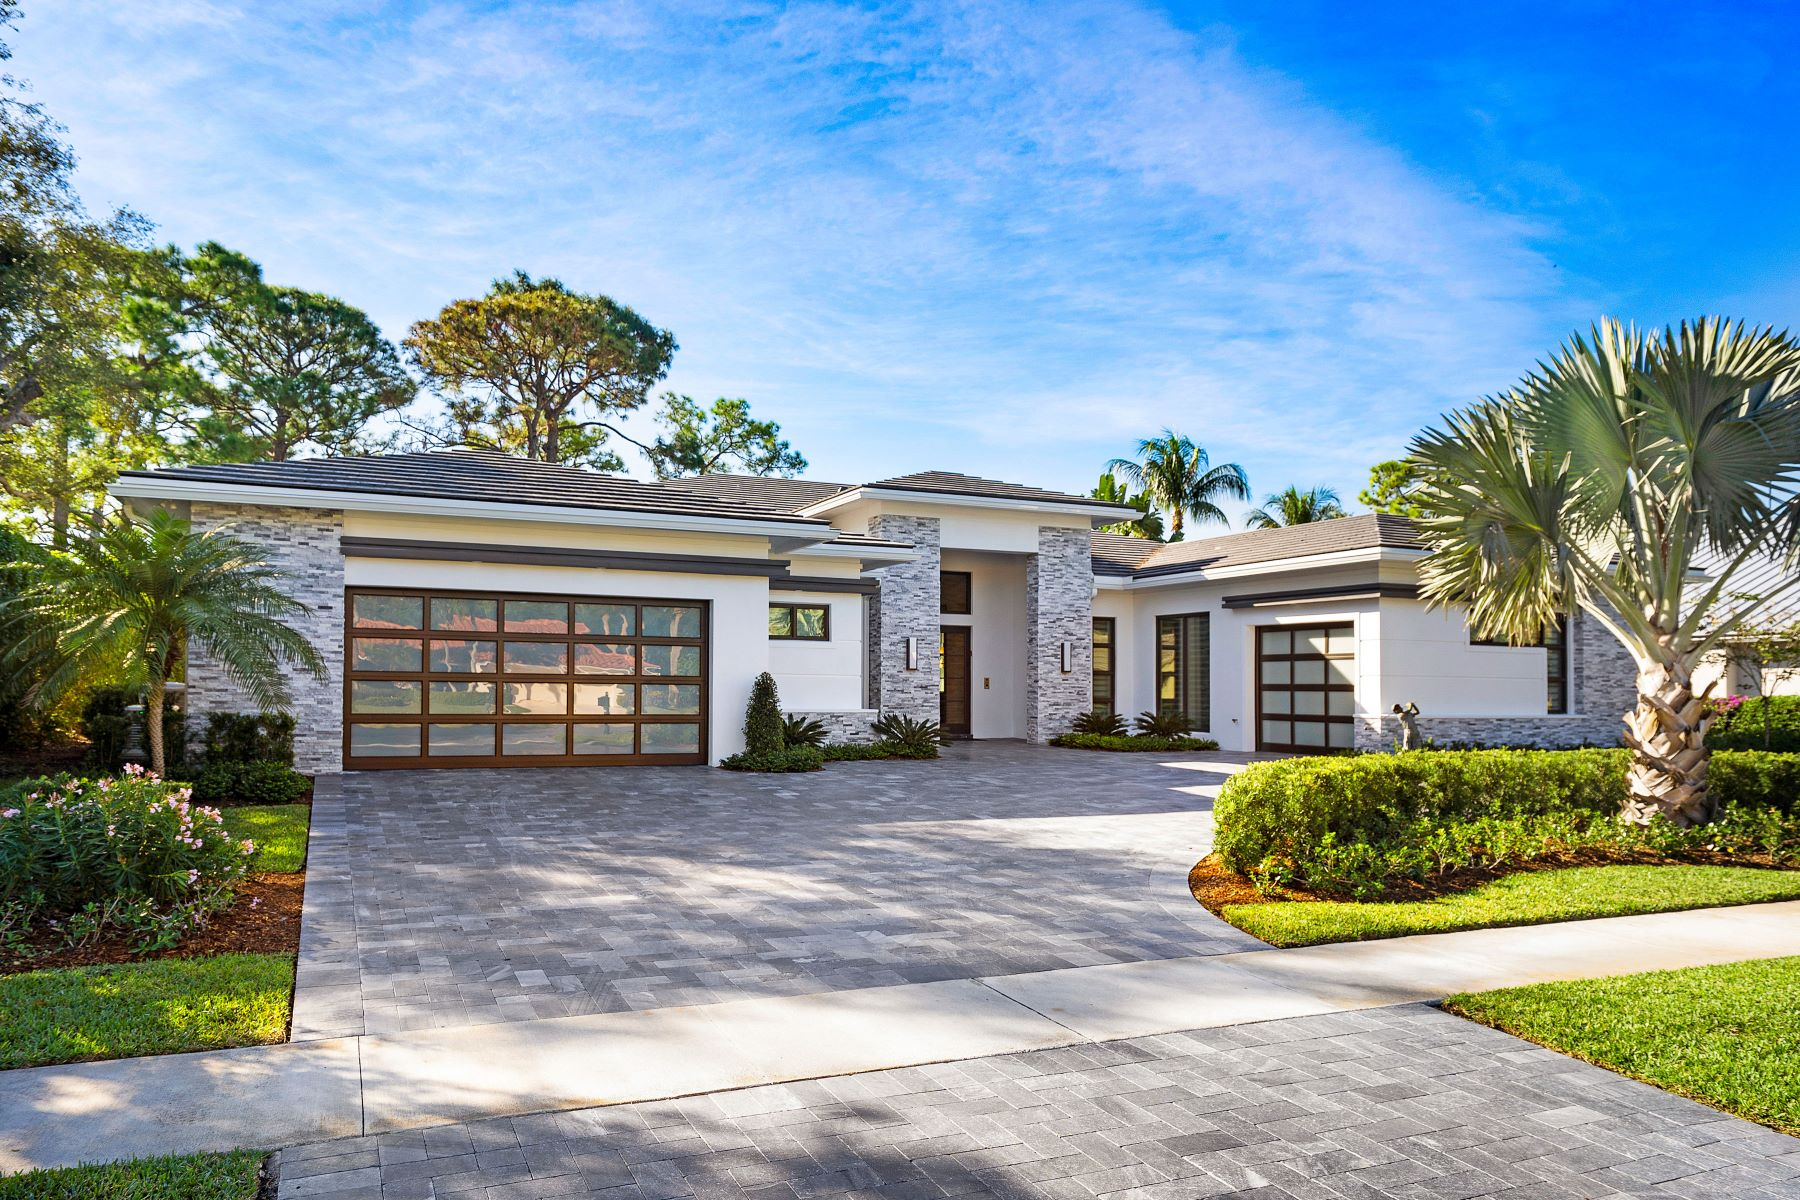 Single Family Homes for Sale at 9265 Orchid Cove Circle Vero Beach, Florida 32963 United States